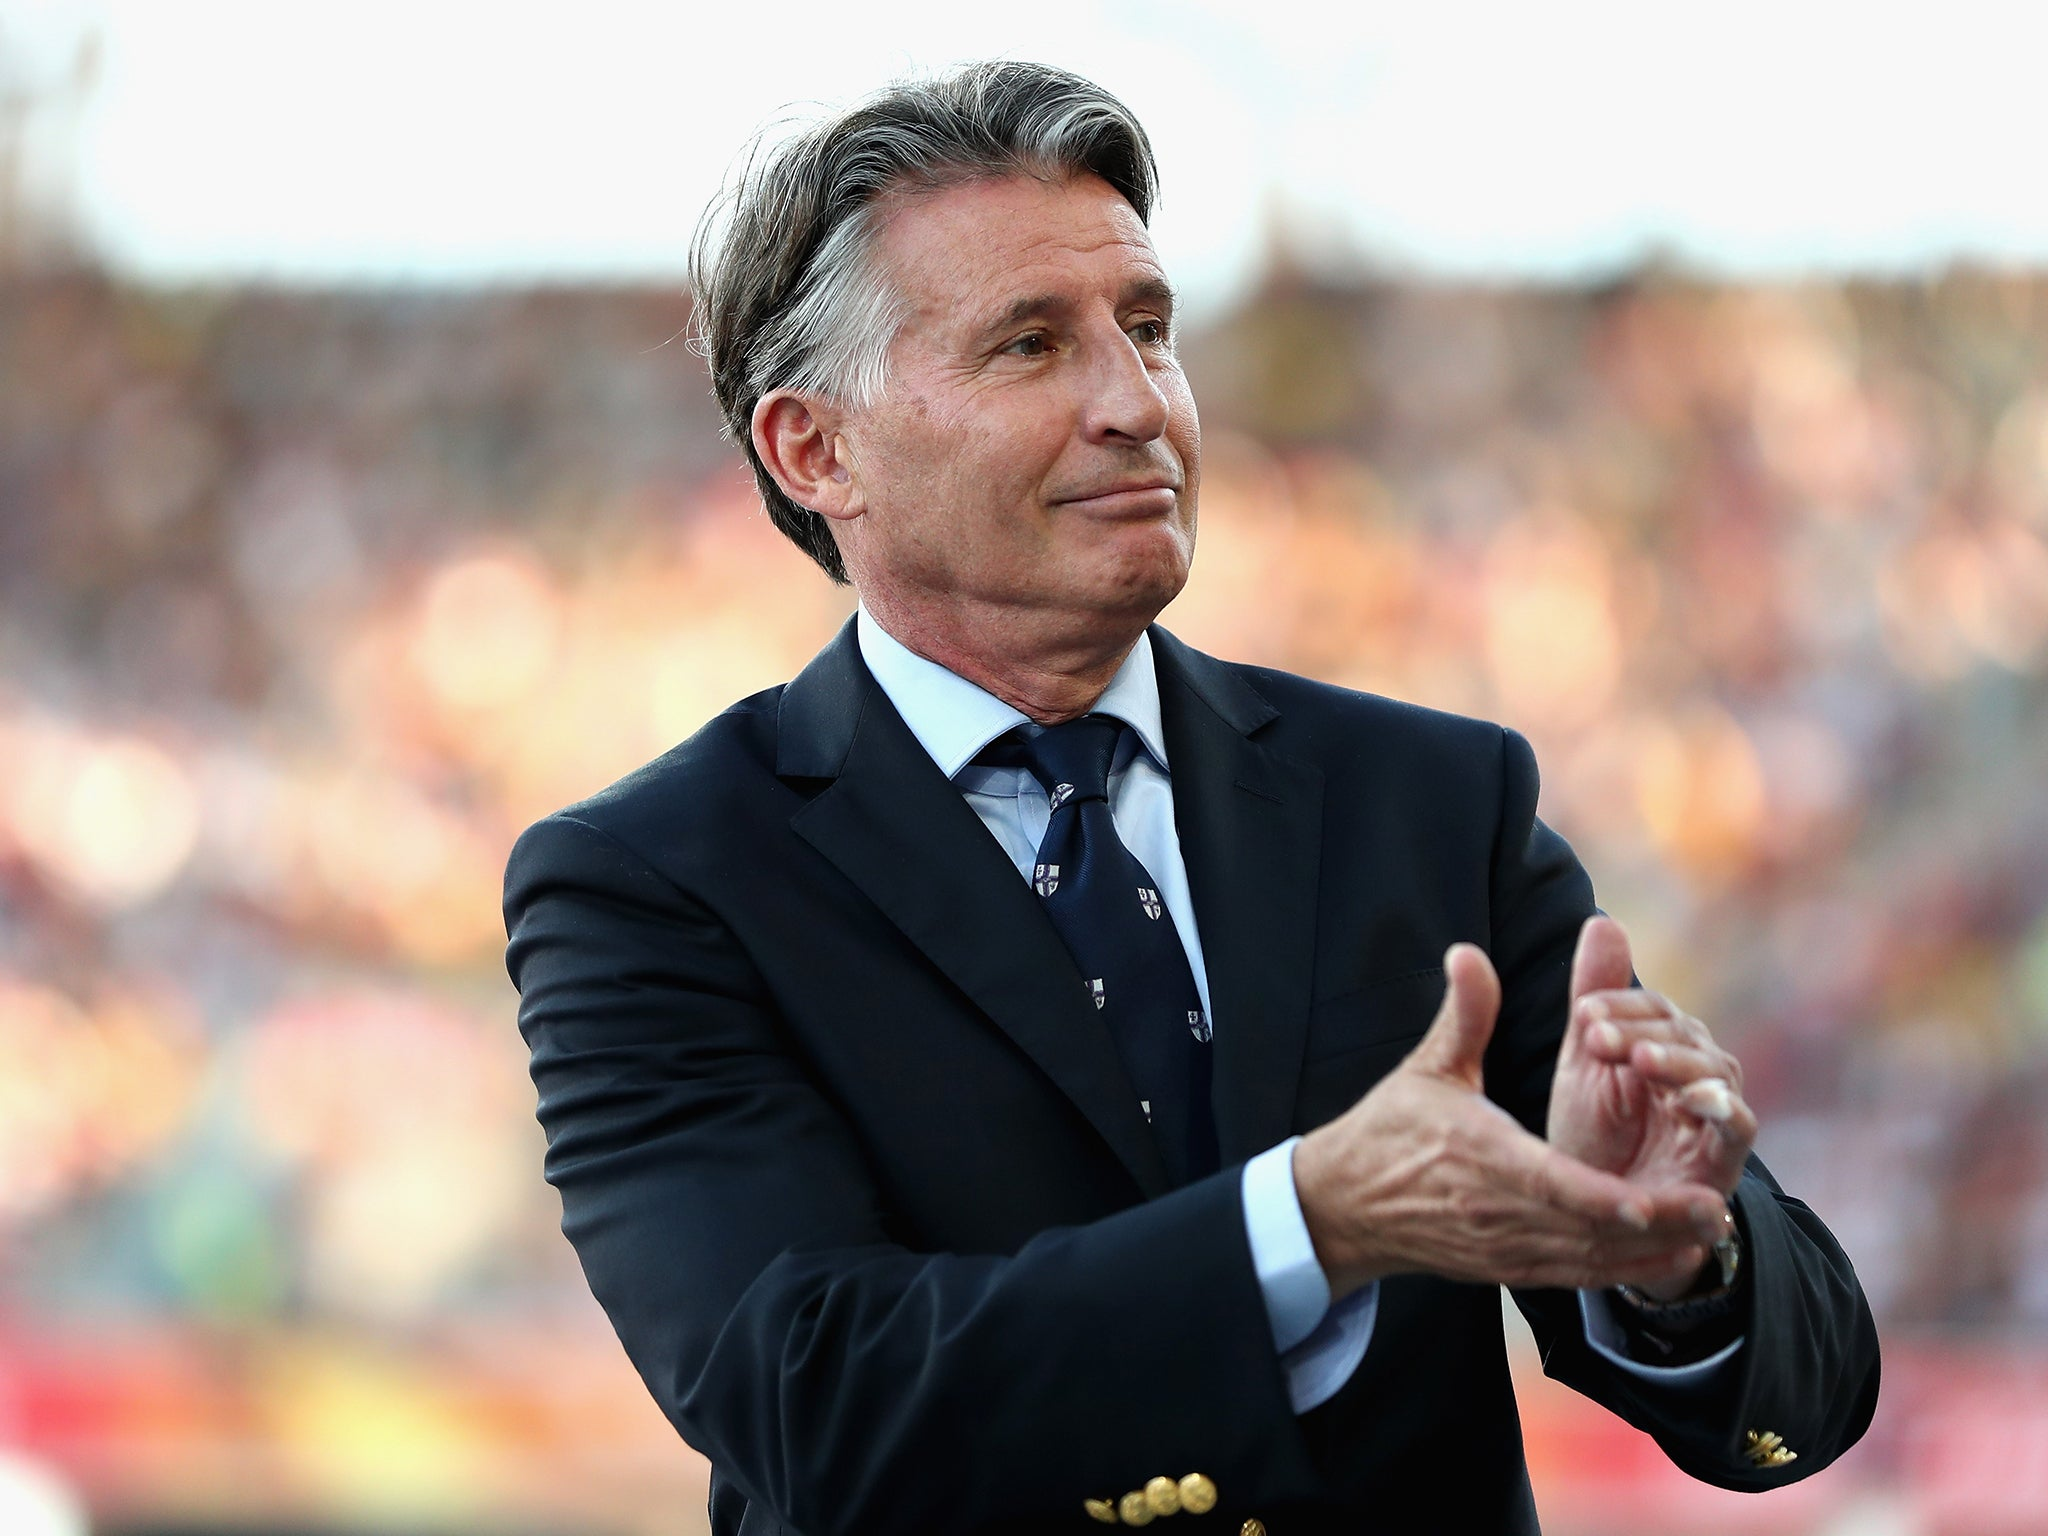 Commonwealth Games 2018: Sebastian Coe urges leading athletes not to miss chance to compete at championships